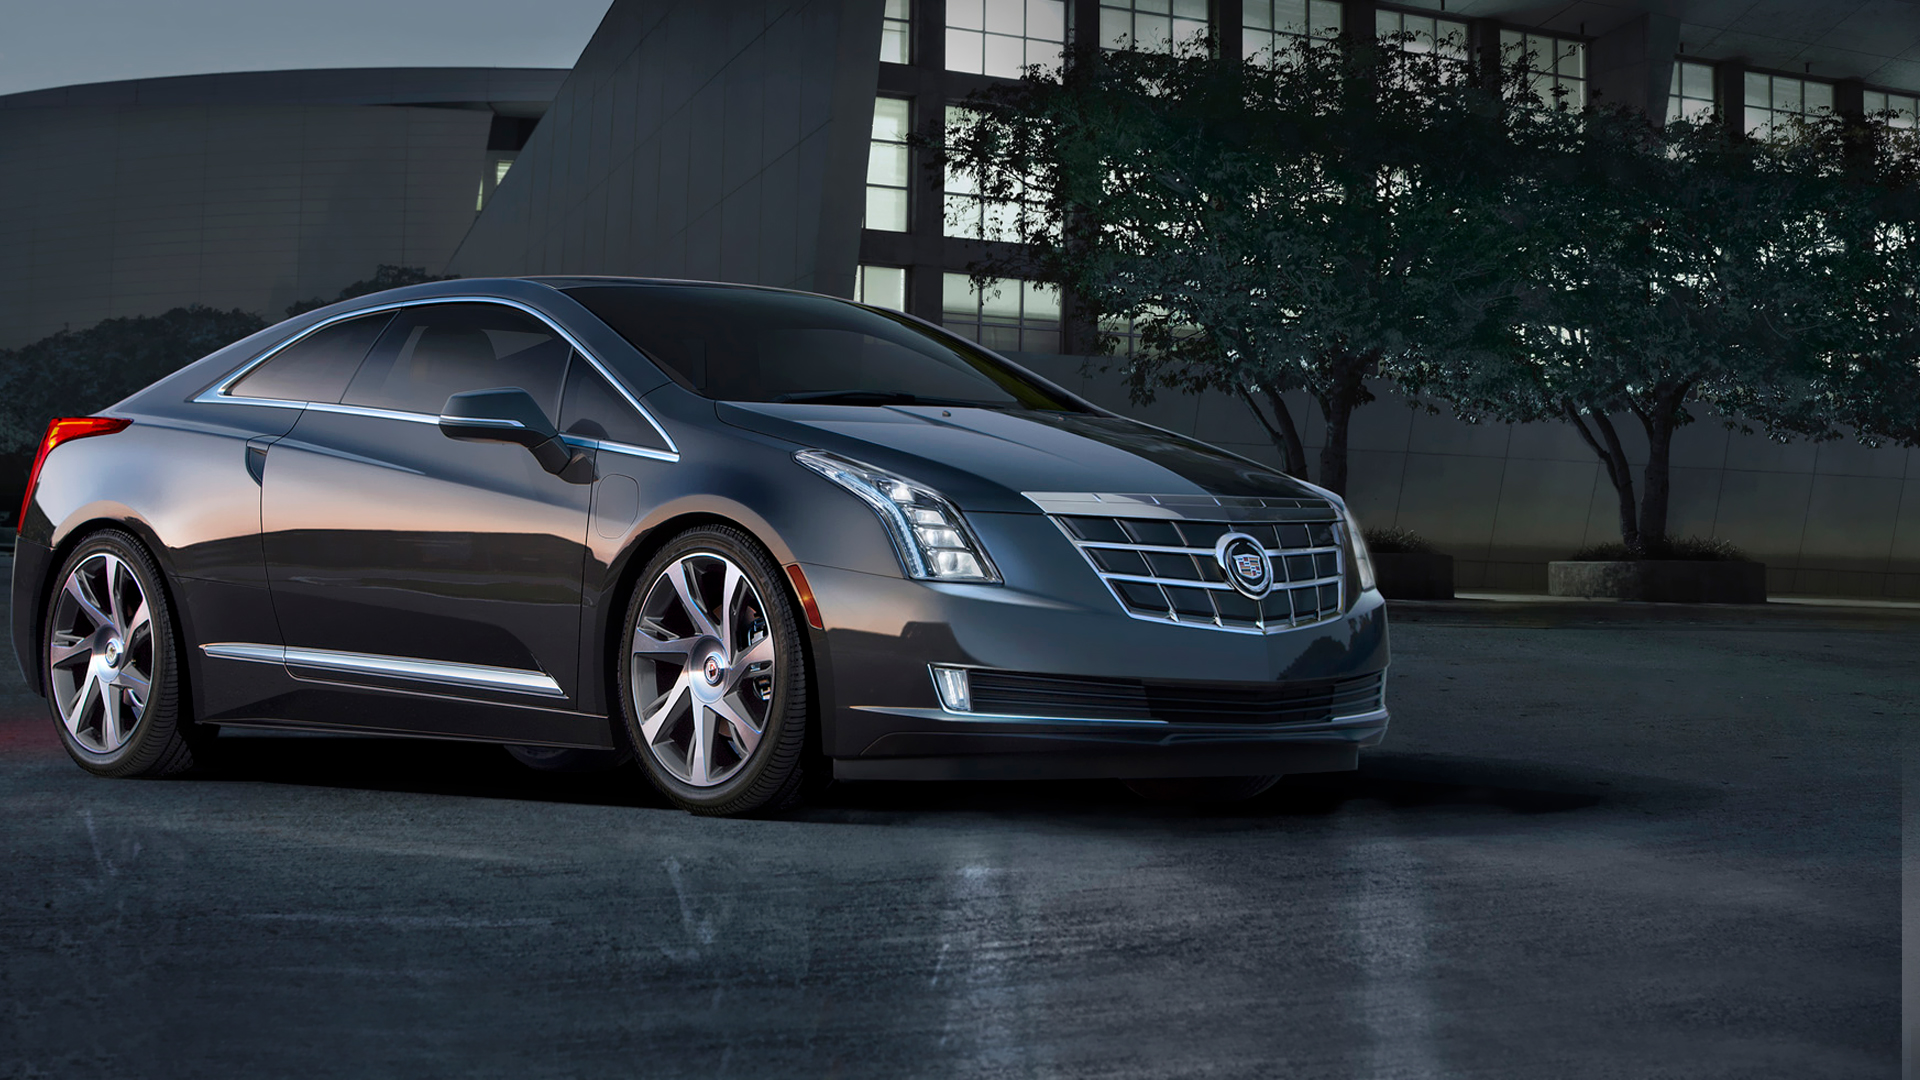 cadillac wallpaper wallpapers high quality download free